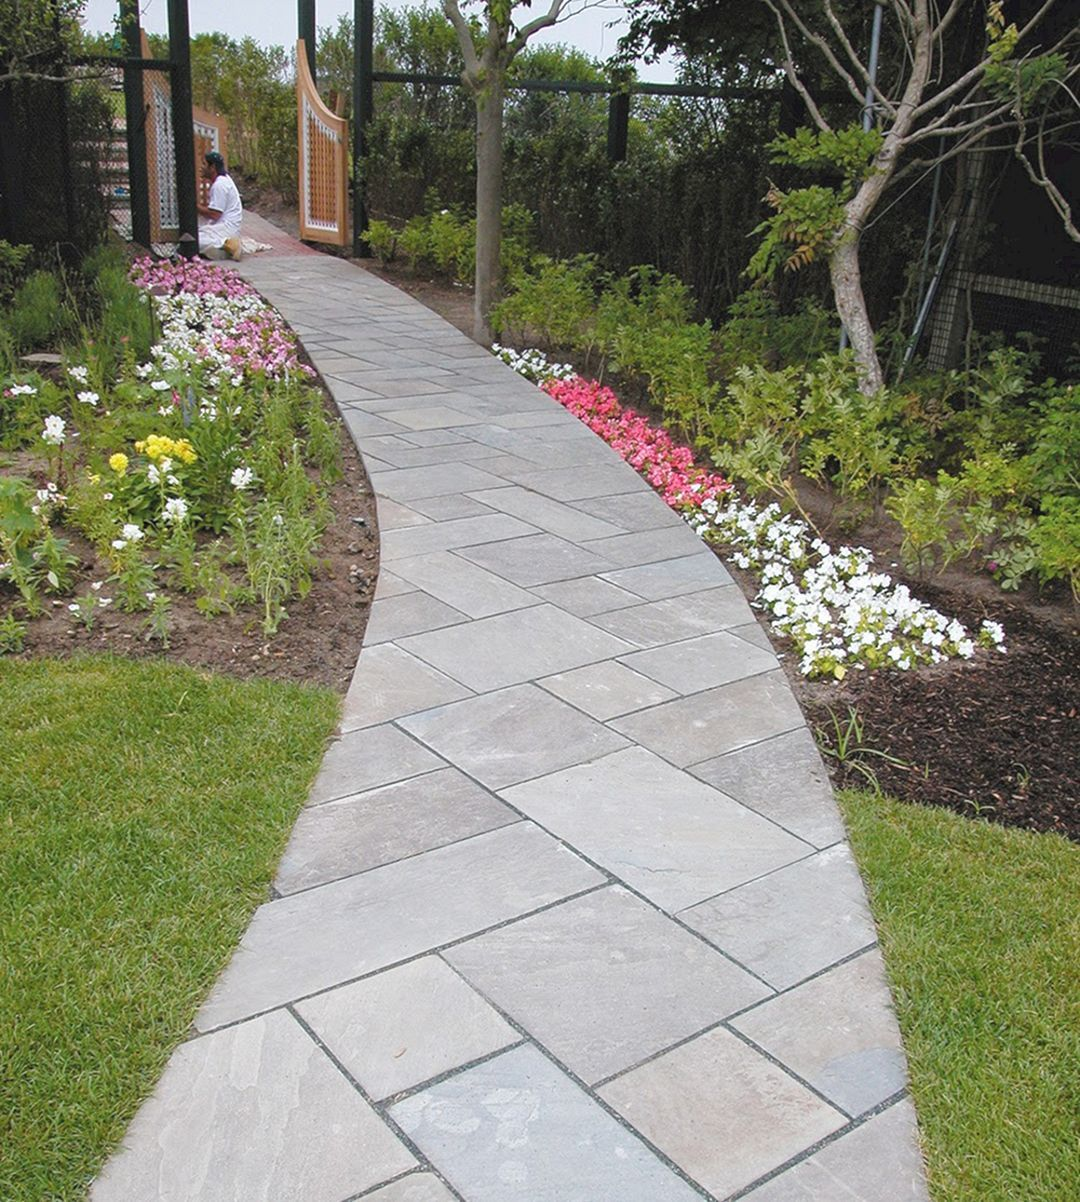 20 Best Backyard Landscaping Ideas With Walkway Front Walkway Landscaping Walkway Landscaping Landscaping With Rocks